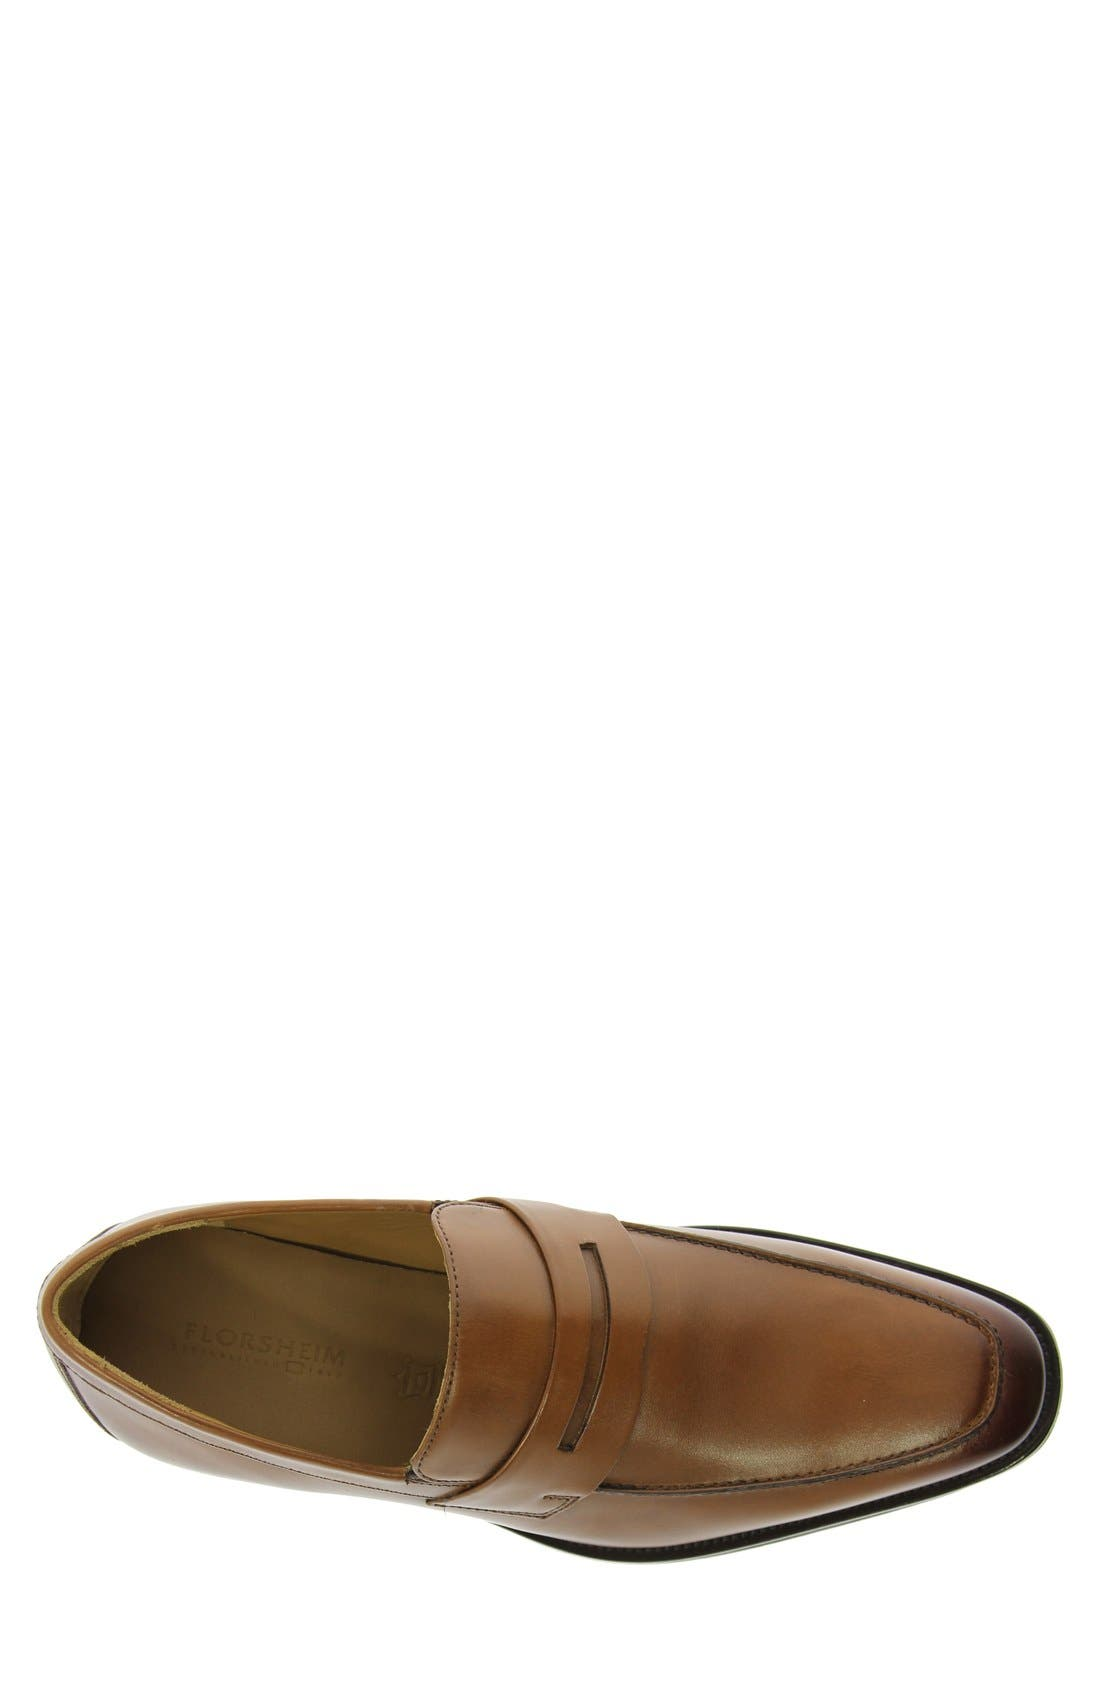 'Sabato' Penny Loafer,                             Alternate thumbnail 6, color,